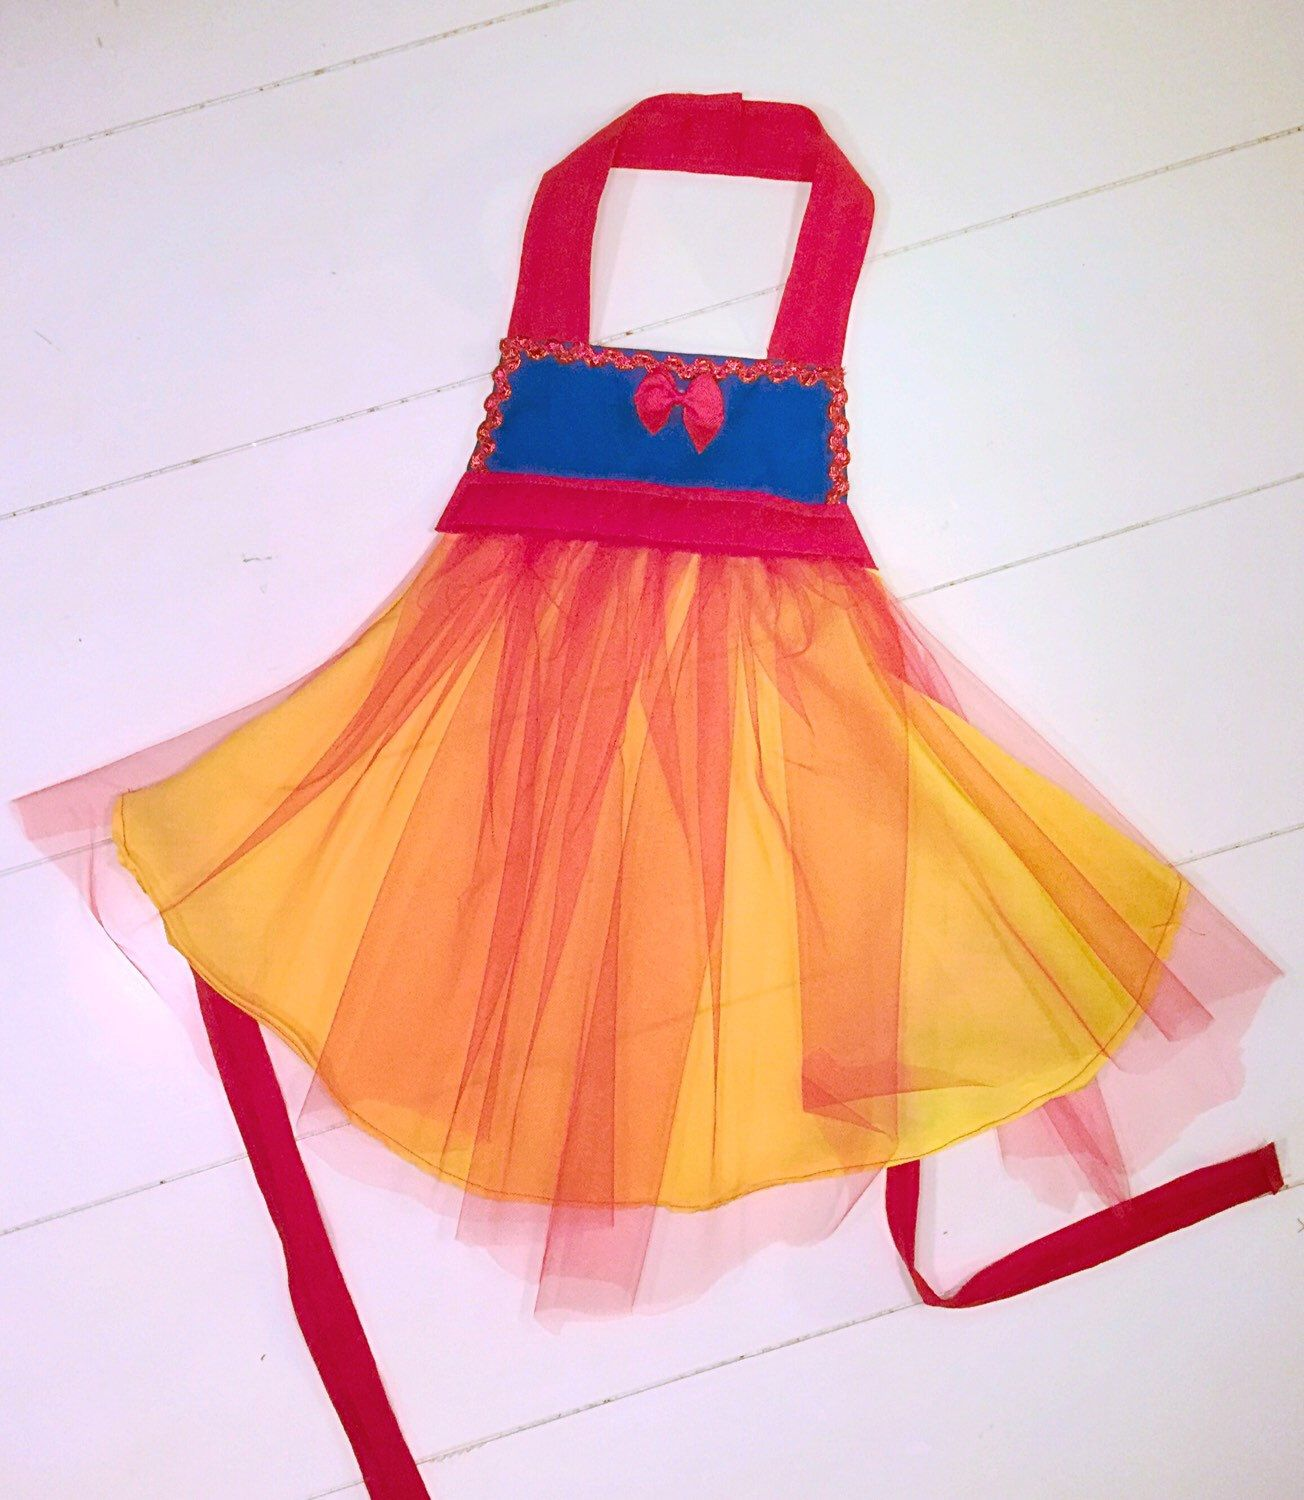 Snow white apron etsy - Snow White Inspired Apron Dress Up Costume By Chaoticcutieco On Etsy Https Www